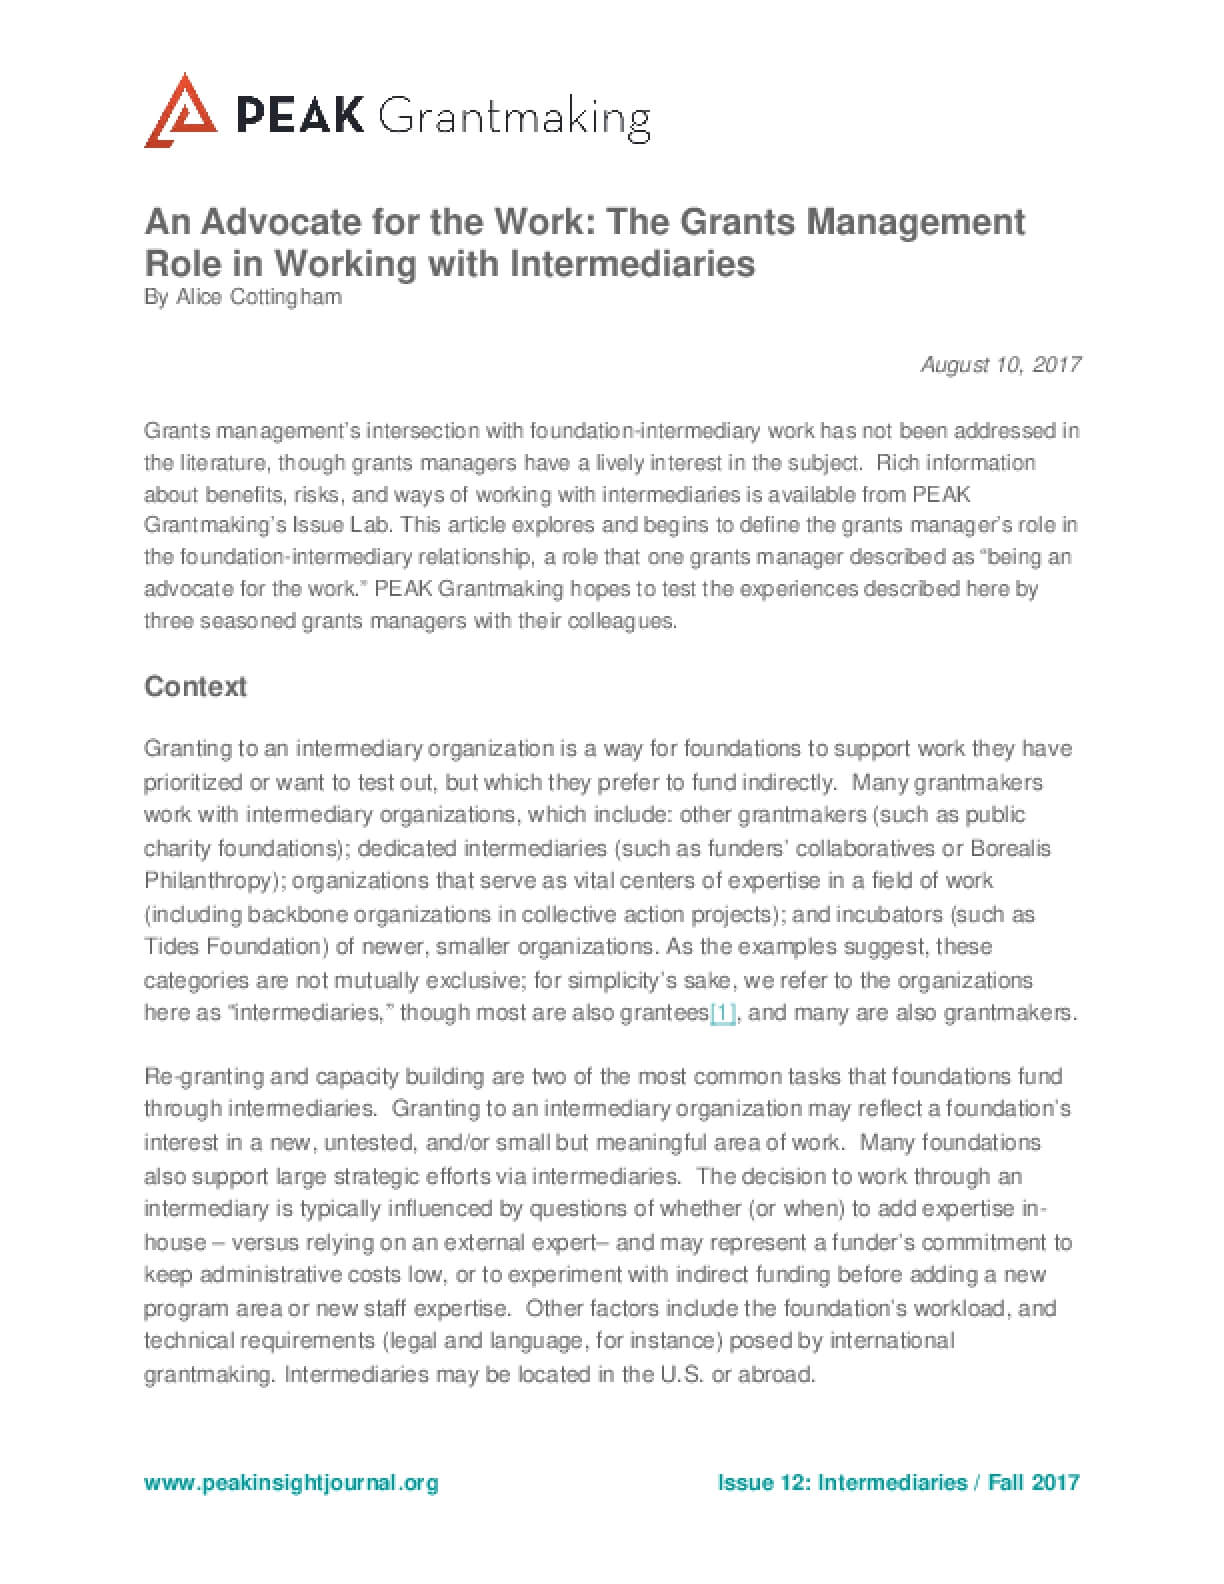 An Advocate for the Work: The Grants Management Role in Working with Intermediaries